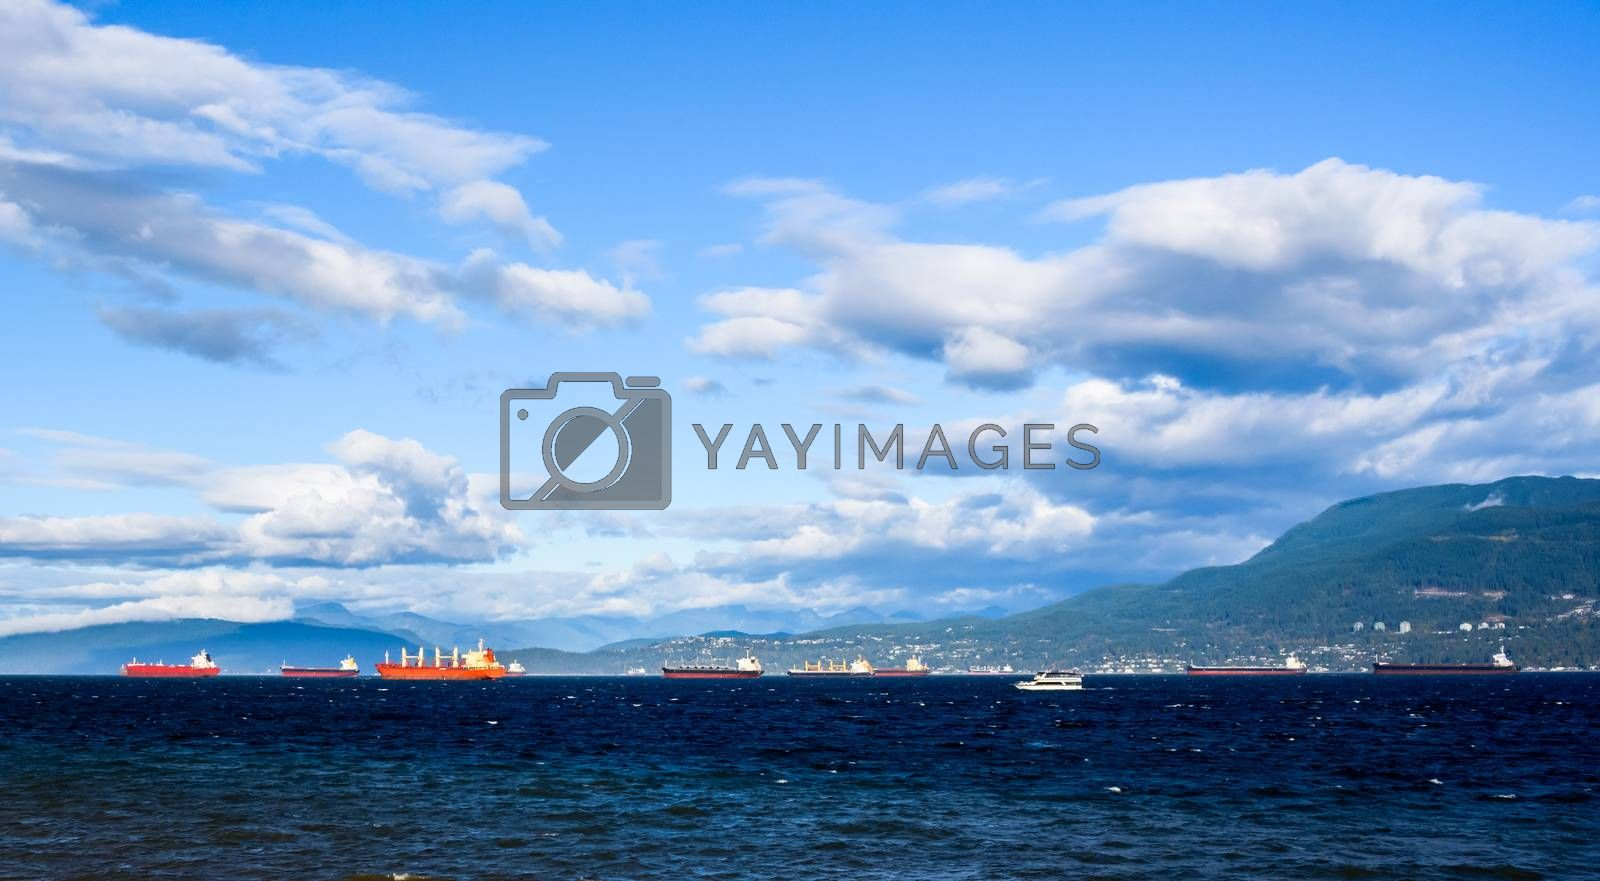 Cargo ships and other boats anchored in bay under a few clouds and blue sky near Vancouver, British Columbia, Canada.